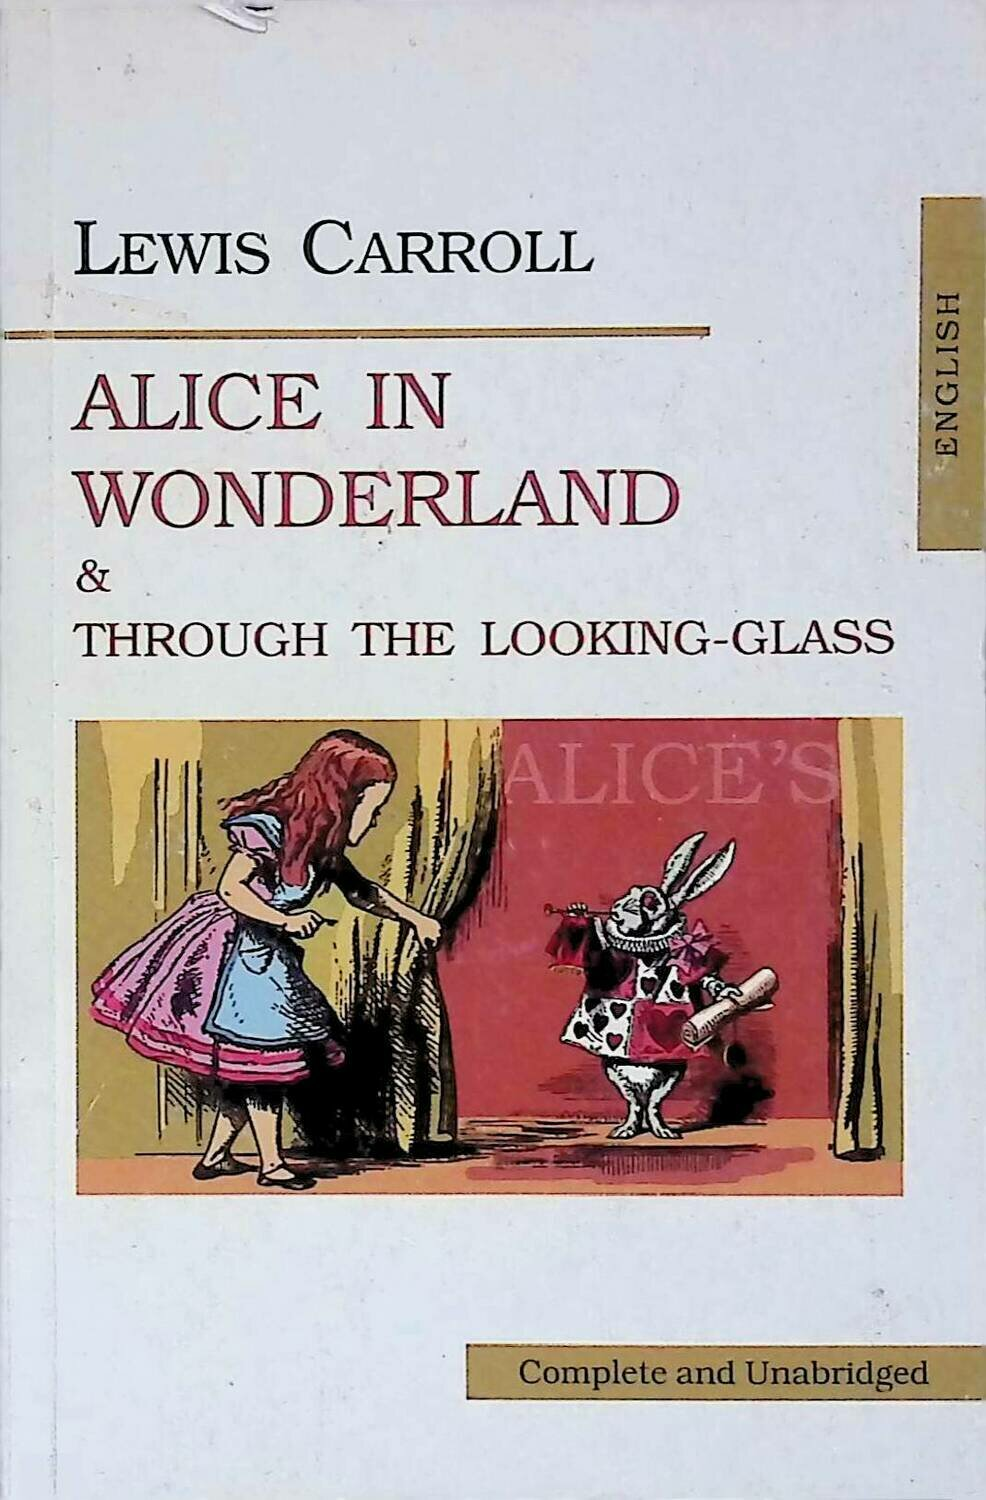 Alice in Wonderland & Through the Looking-Glass; Lewis Carroll